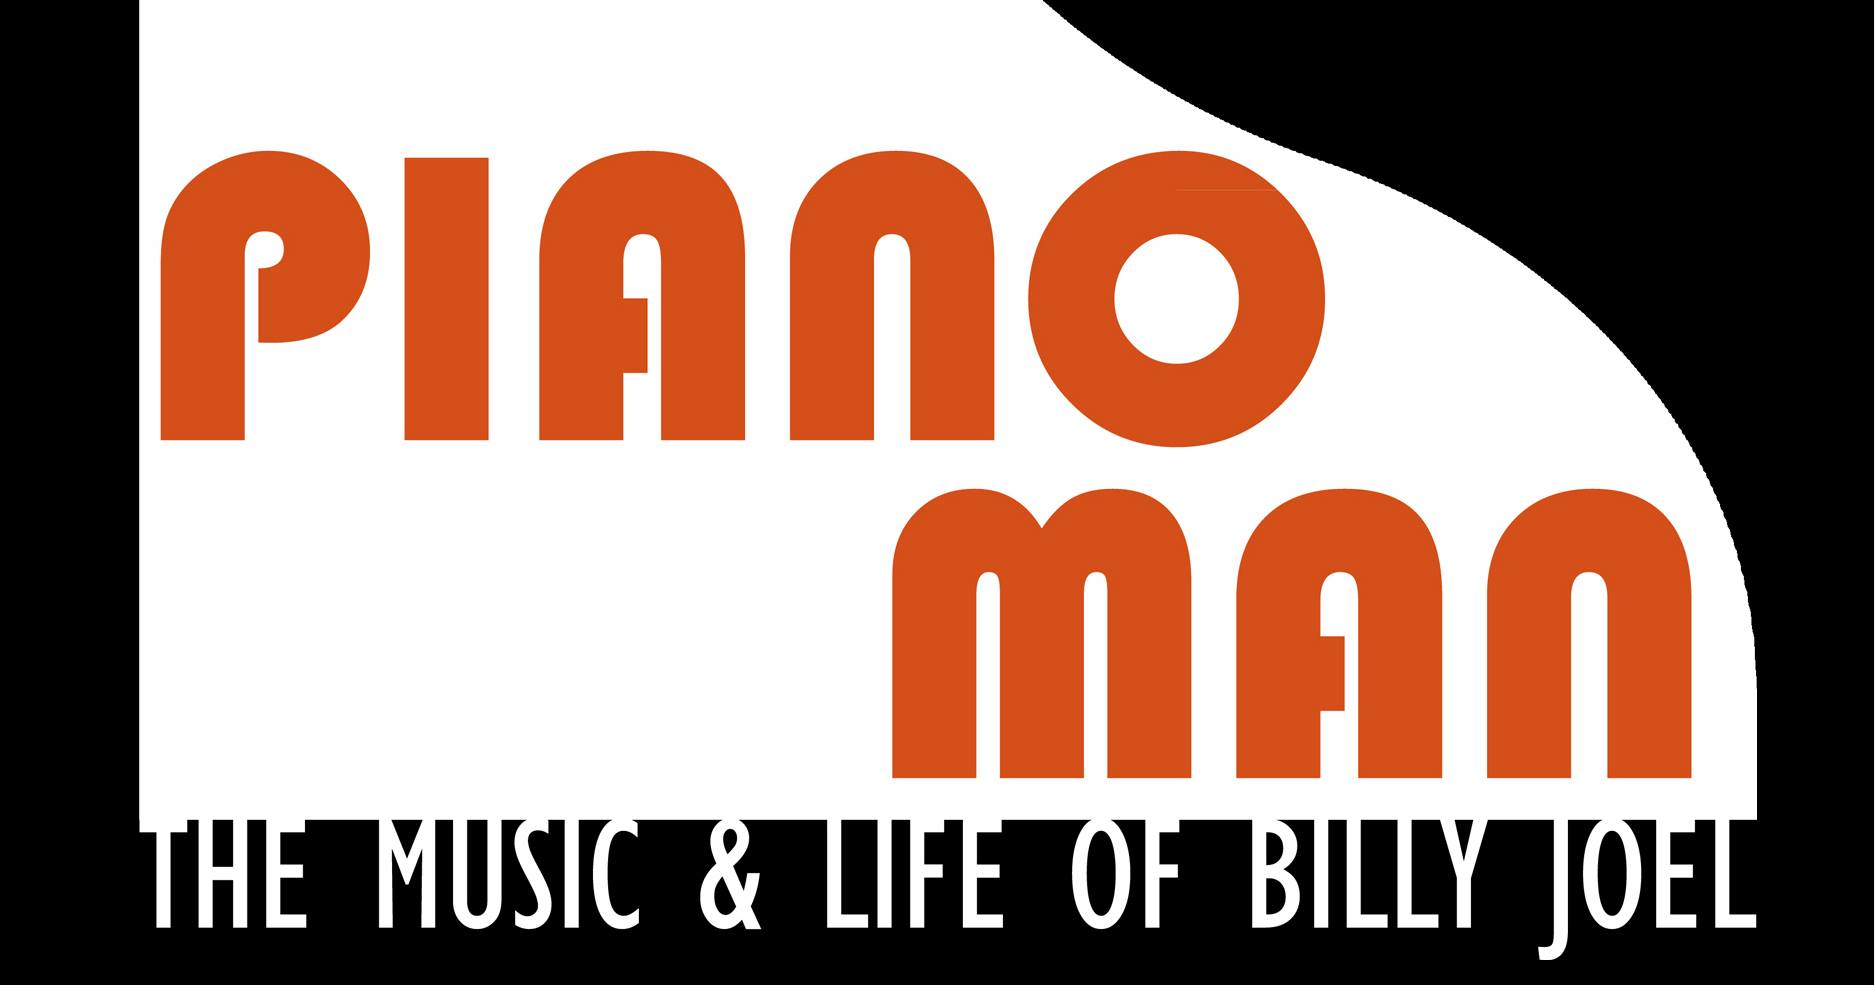 Piano Man - The Music and Life of Billy Joel: A Dinner Theatre